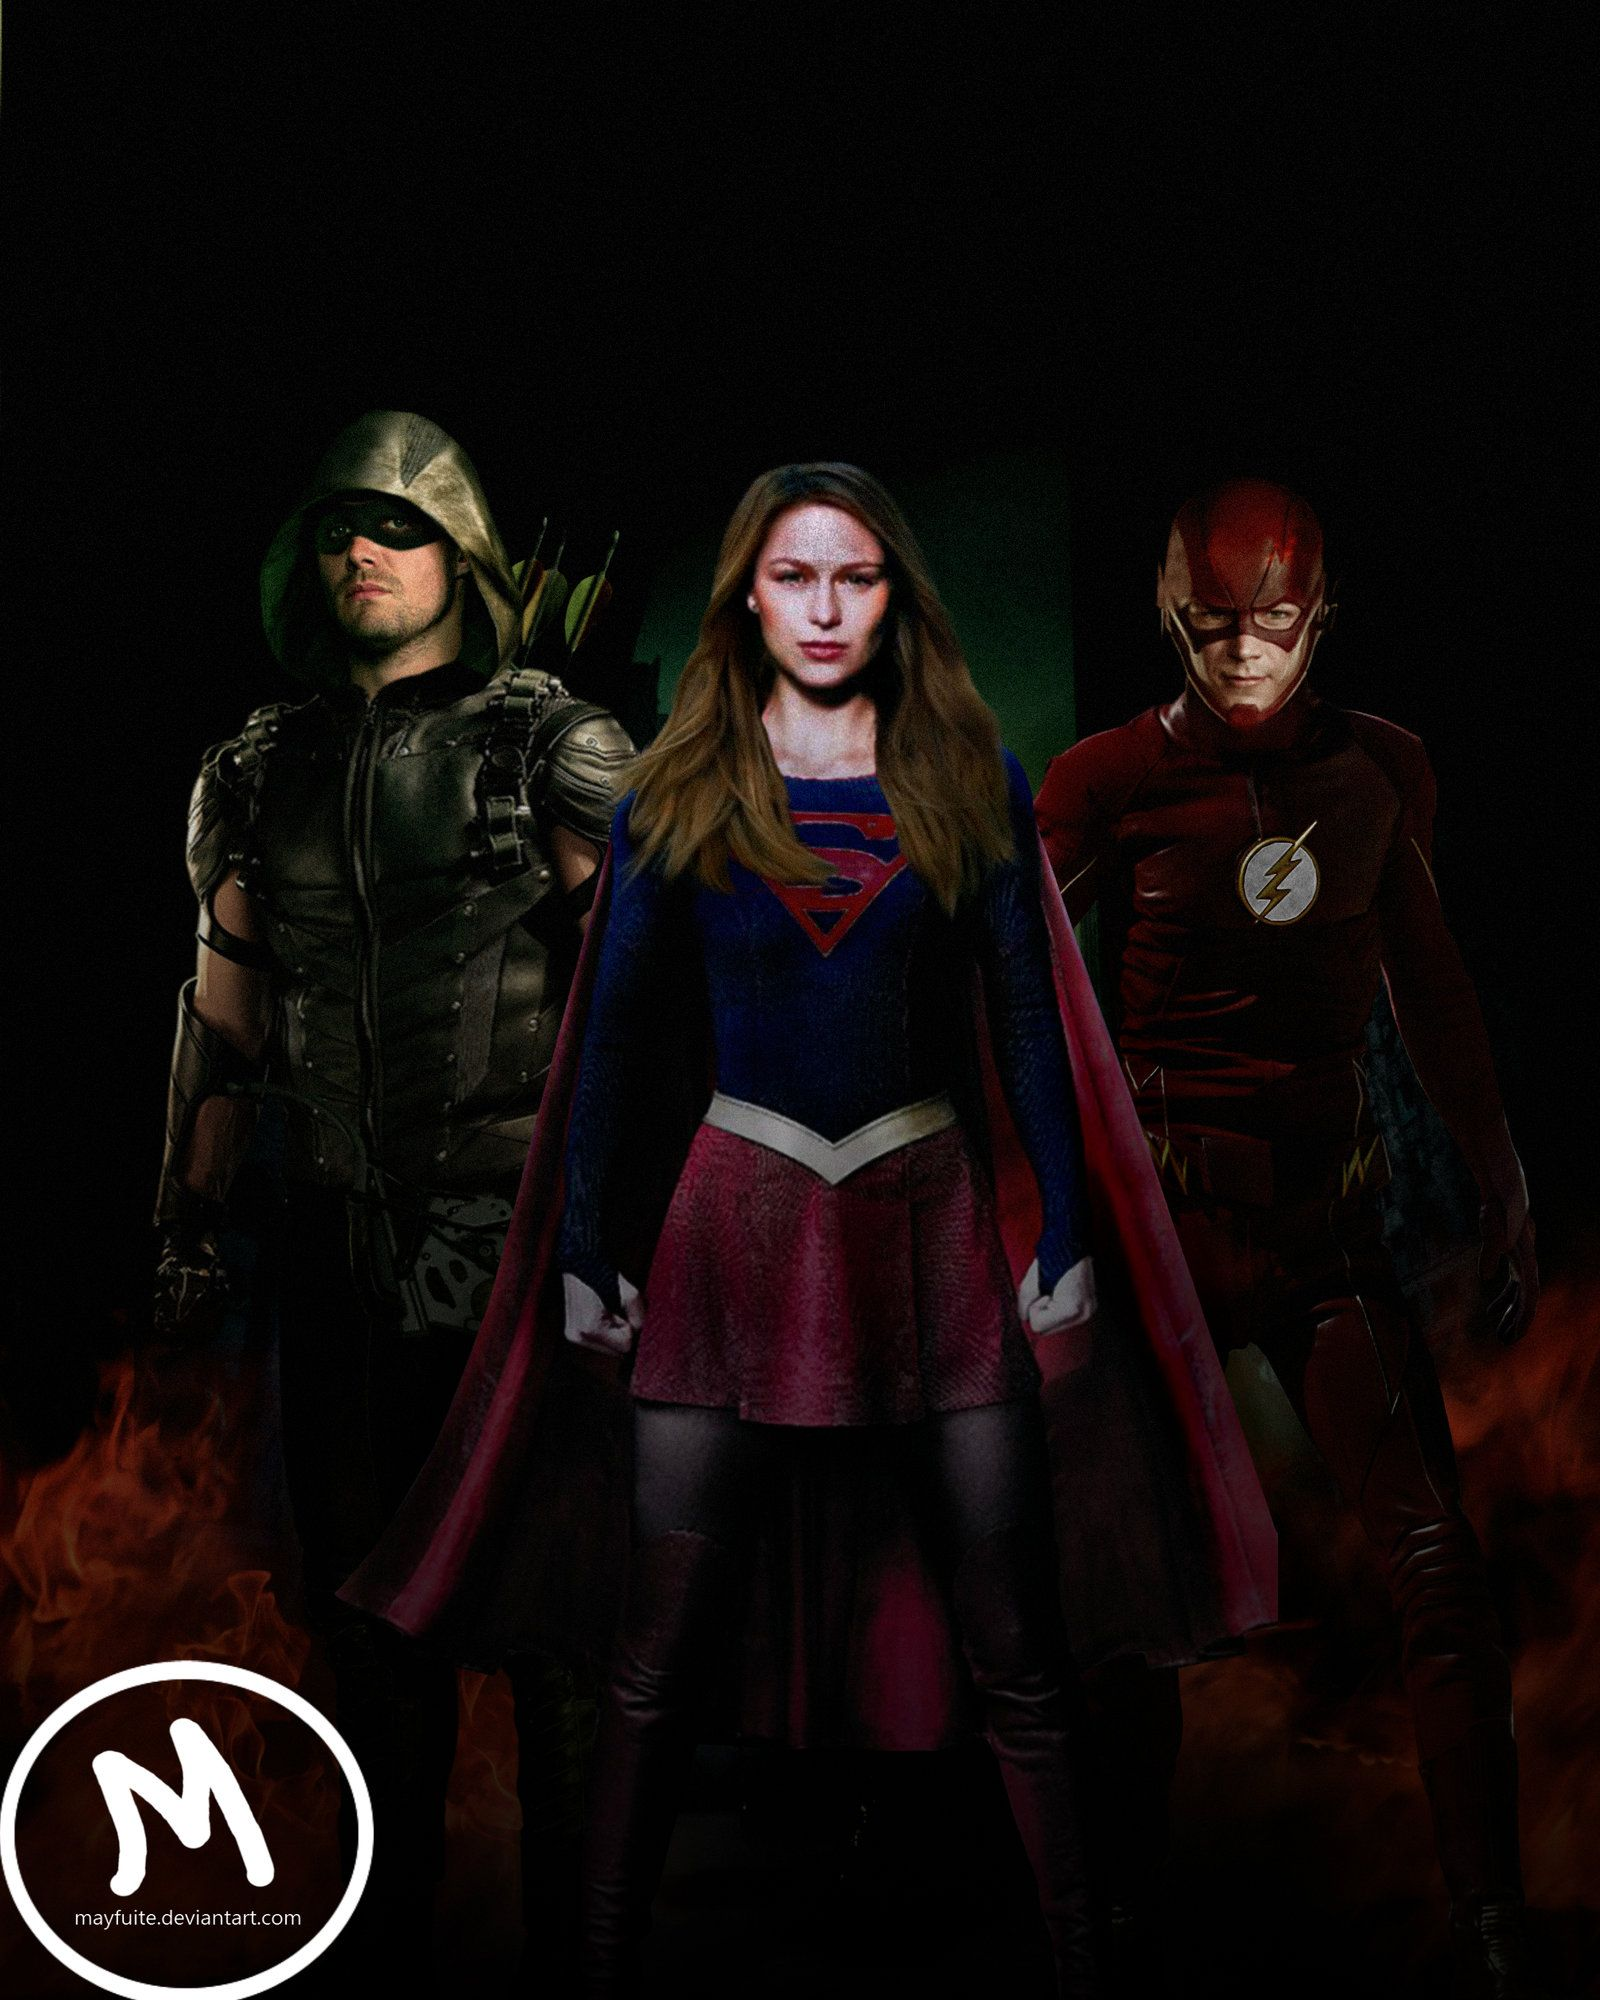 1600x2000 Arrow, Flash and Supergirl Crossover by mayfuite on DeviantArt